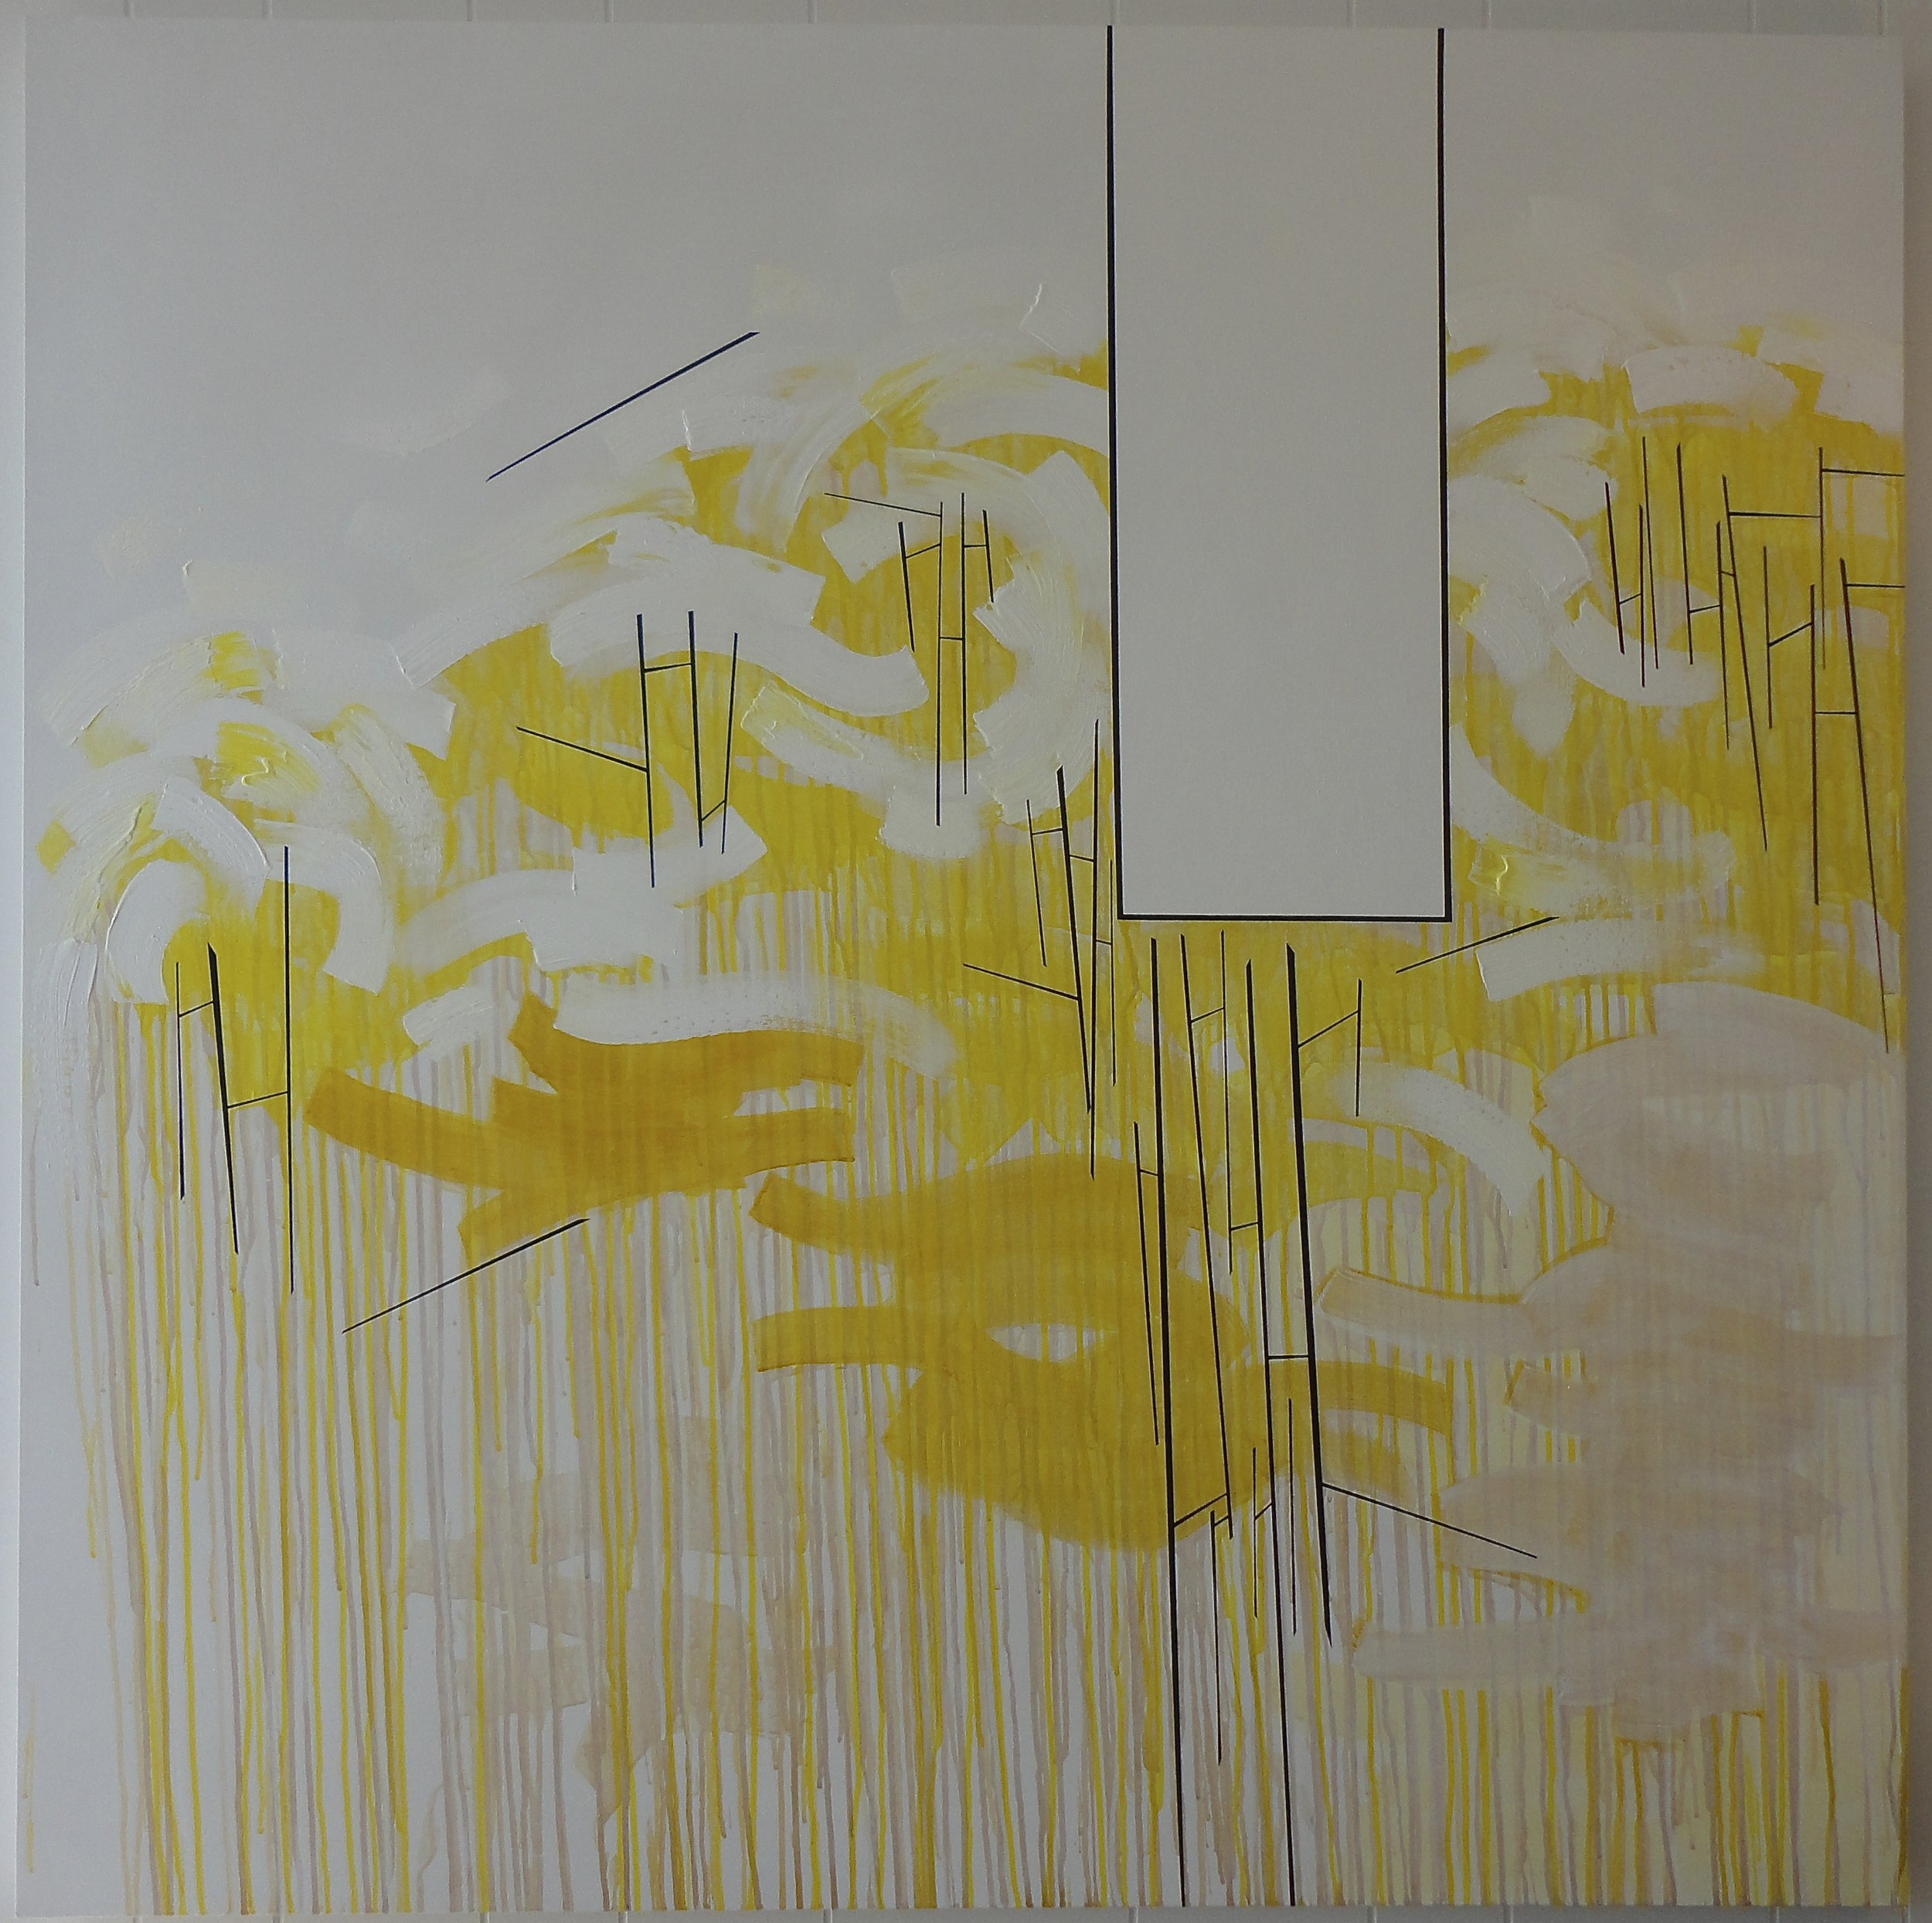 "Untitled (Fade). $550.00, 04/03/13, 54""Hx54""Wx1.5""D, acrylic on canvas."